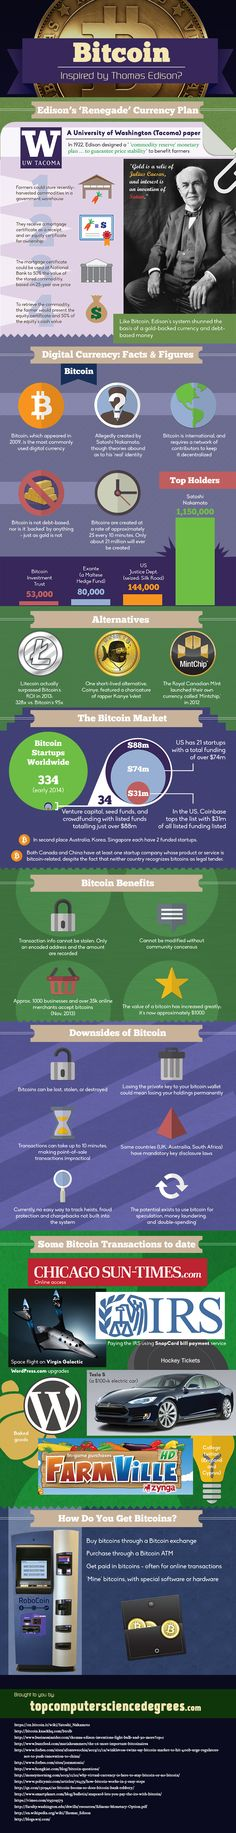 Bitcoin: The Digital Currency Invented by Thomas Edison? (Infographic) image bitcoin 9003